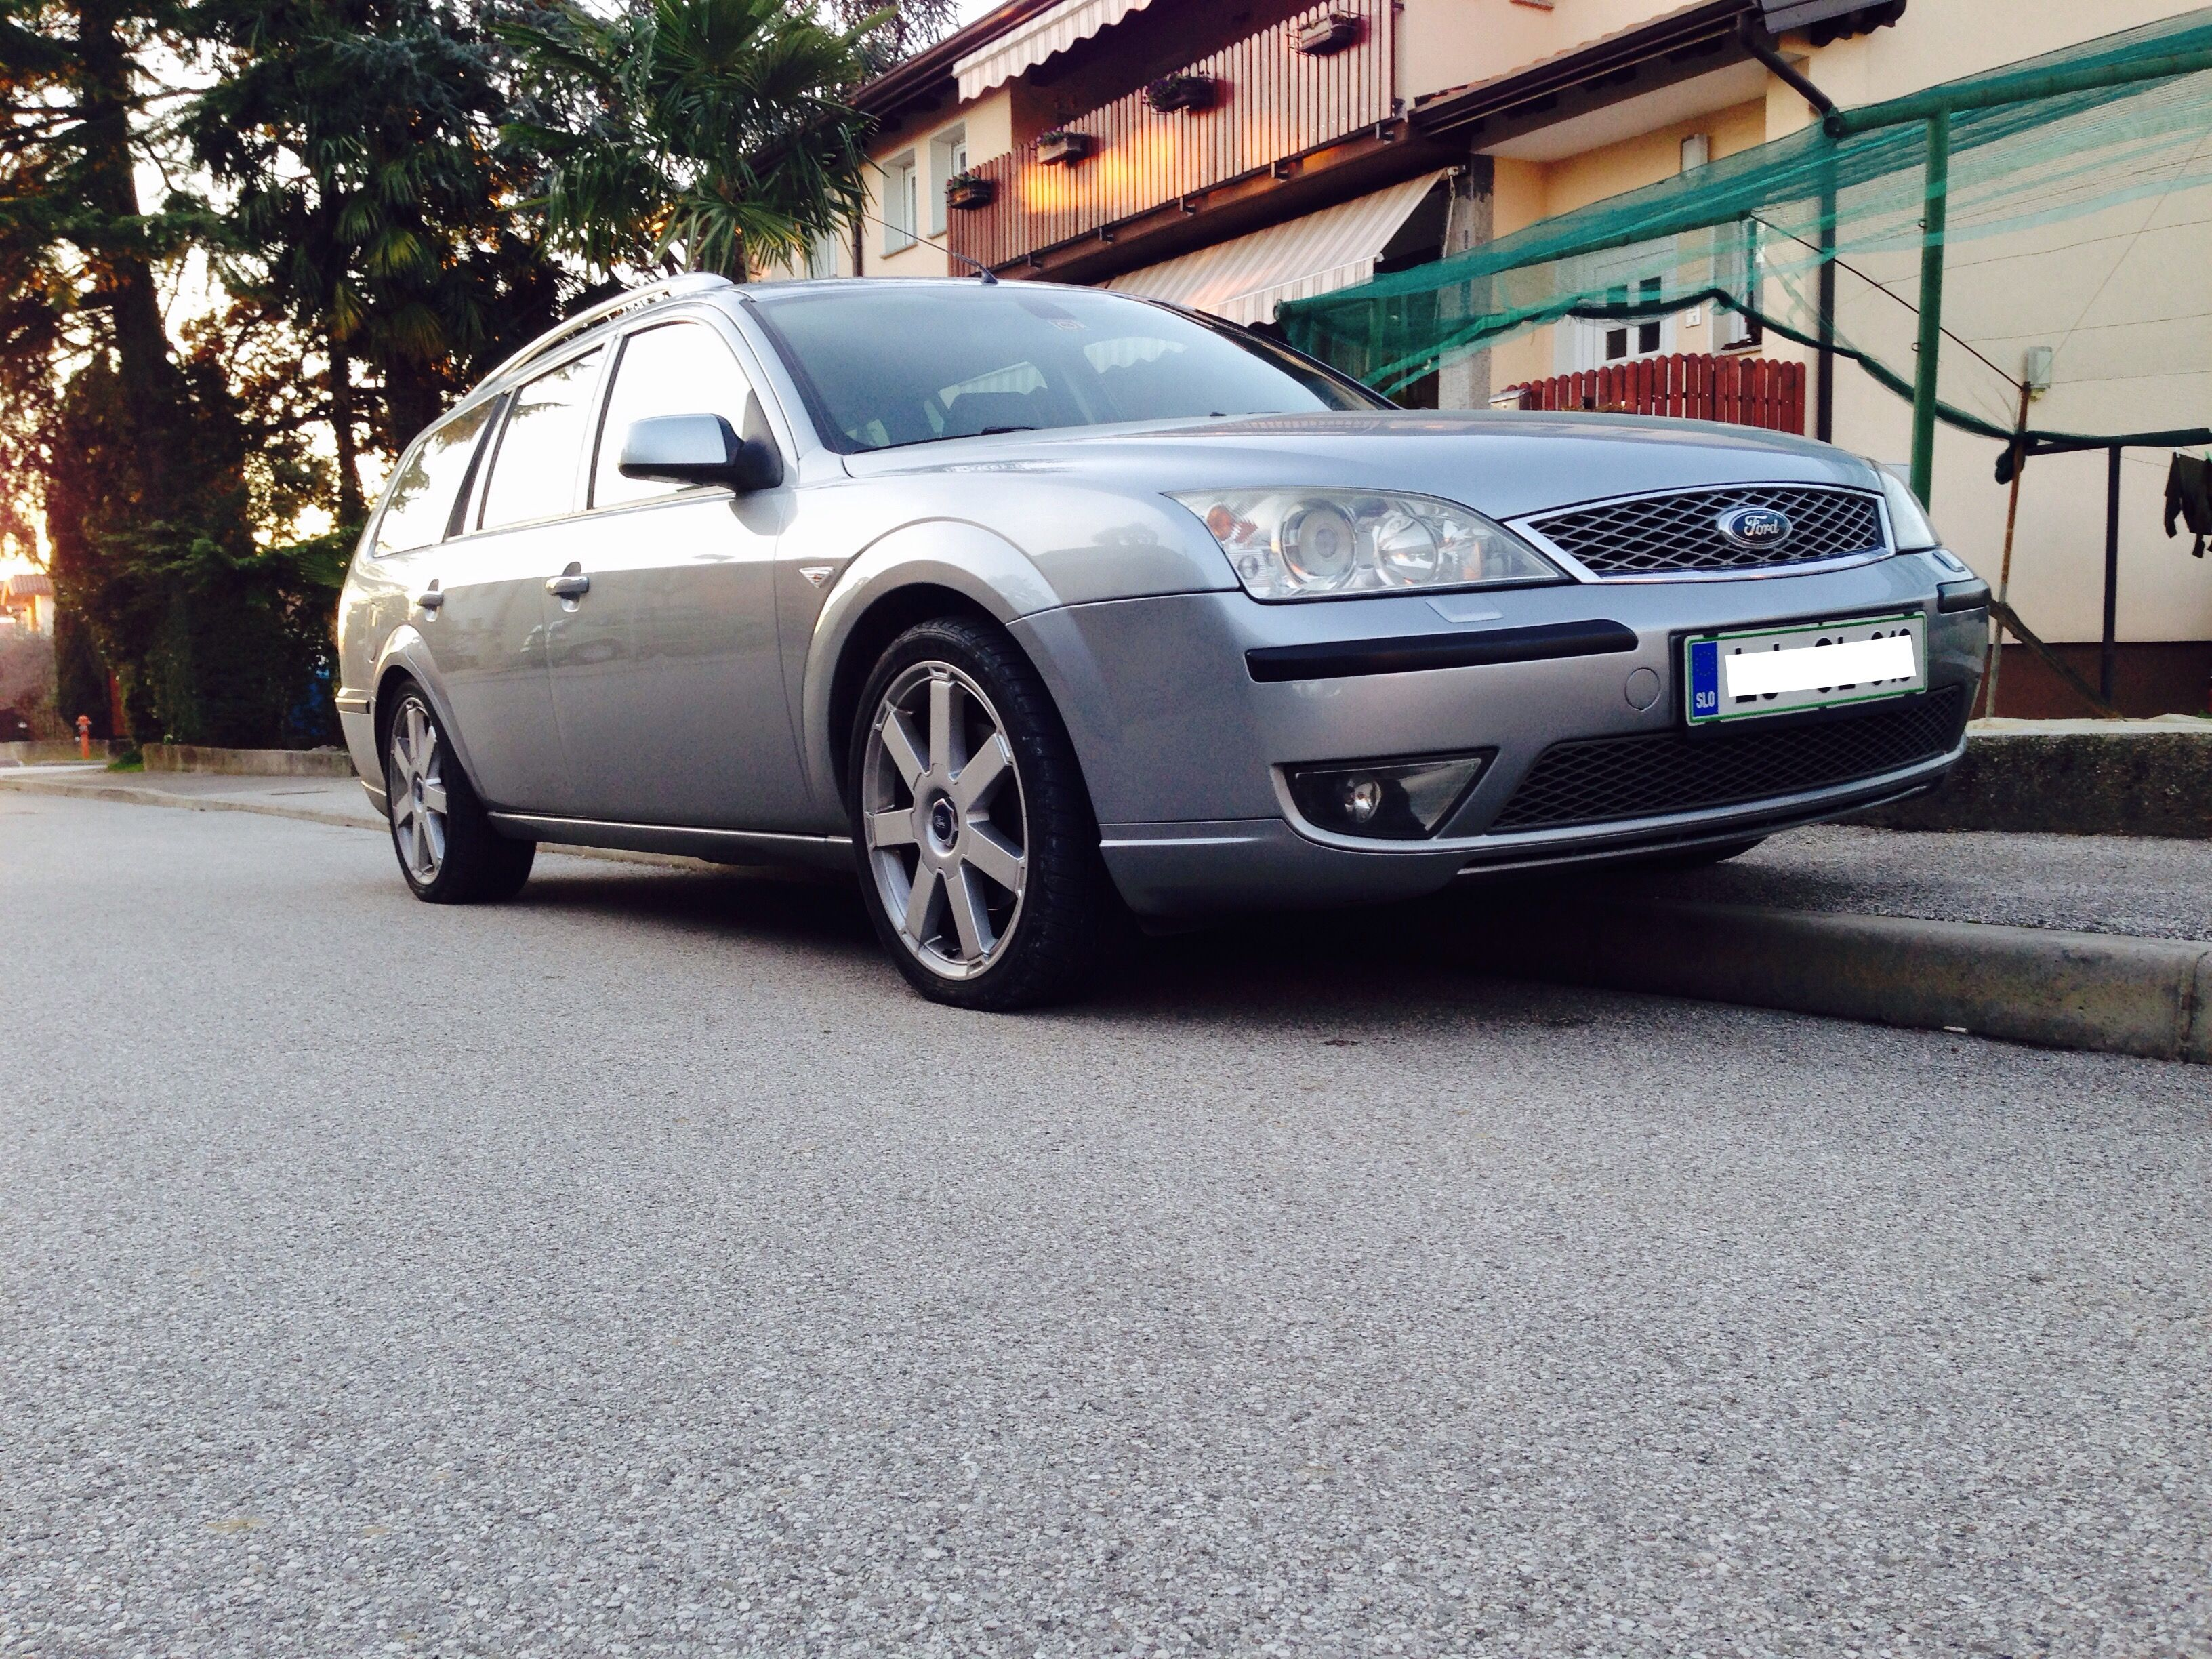 Mondeo st220 mondingoes st220 pinterest ford mondeo ford and cars